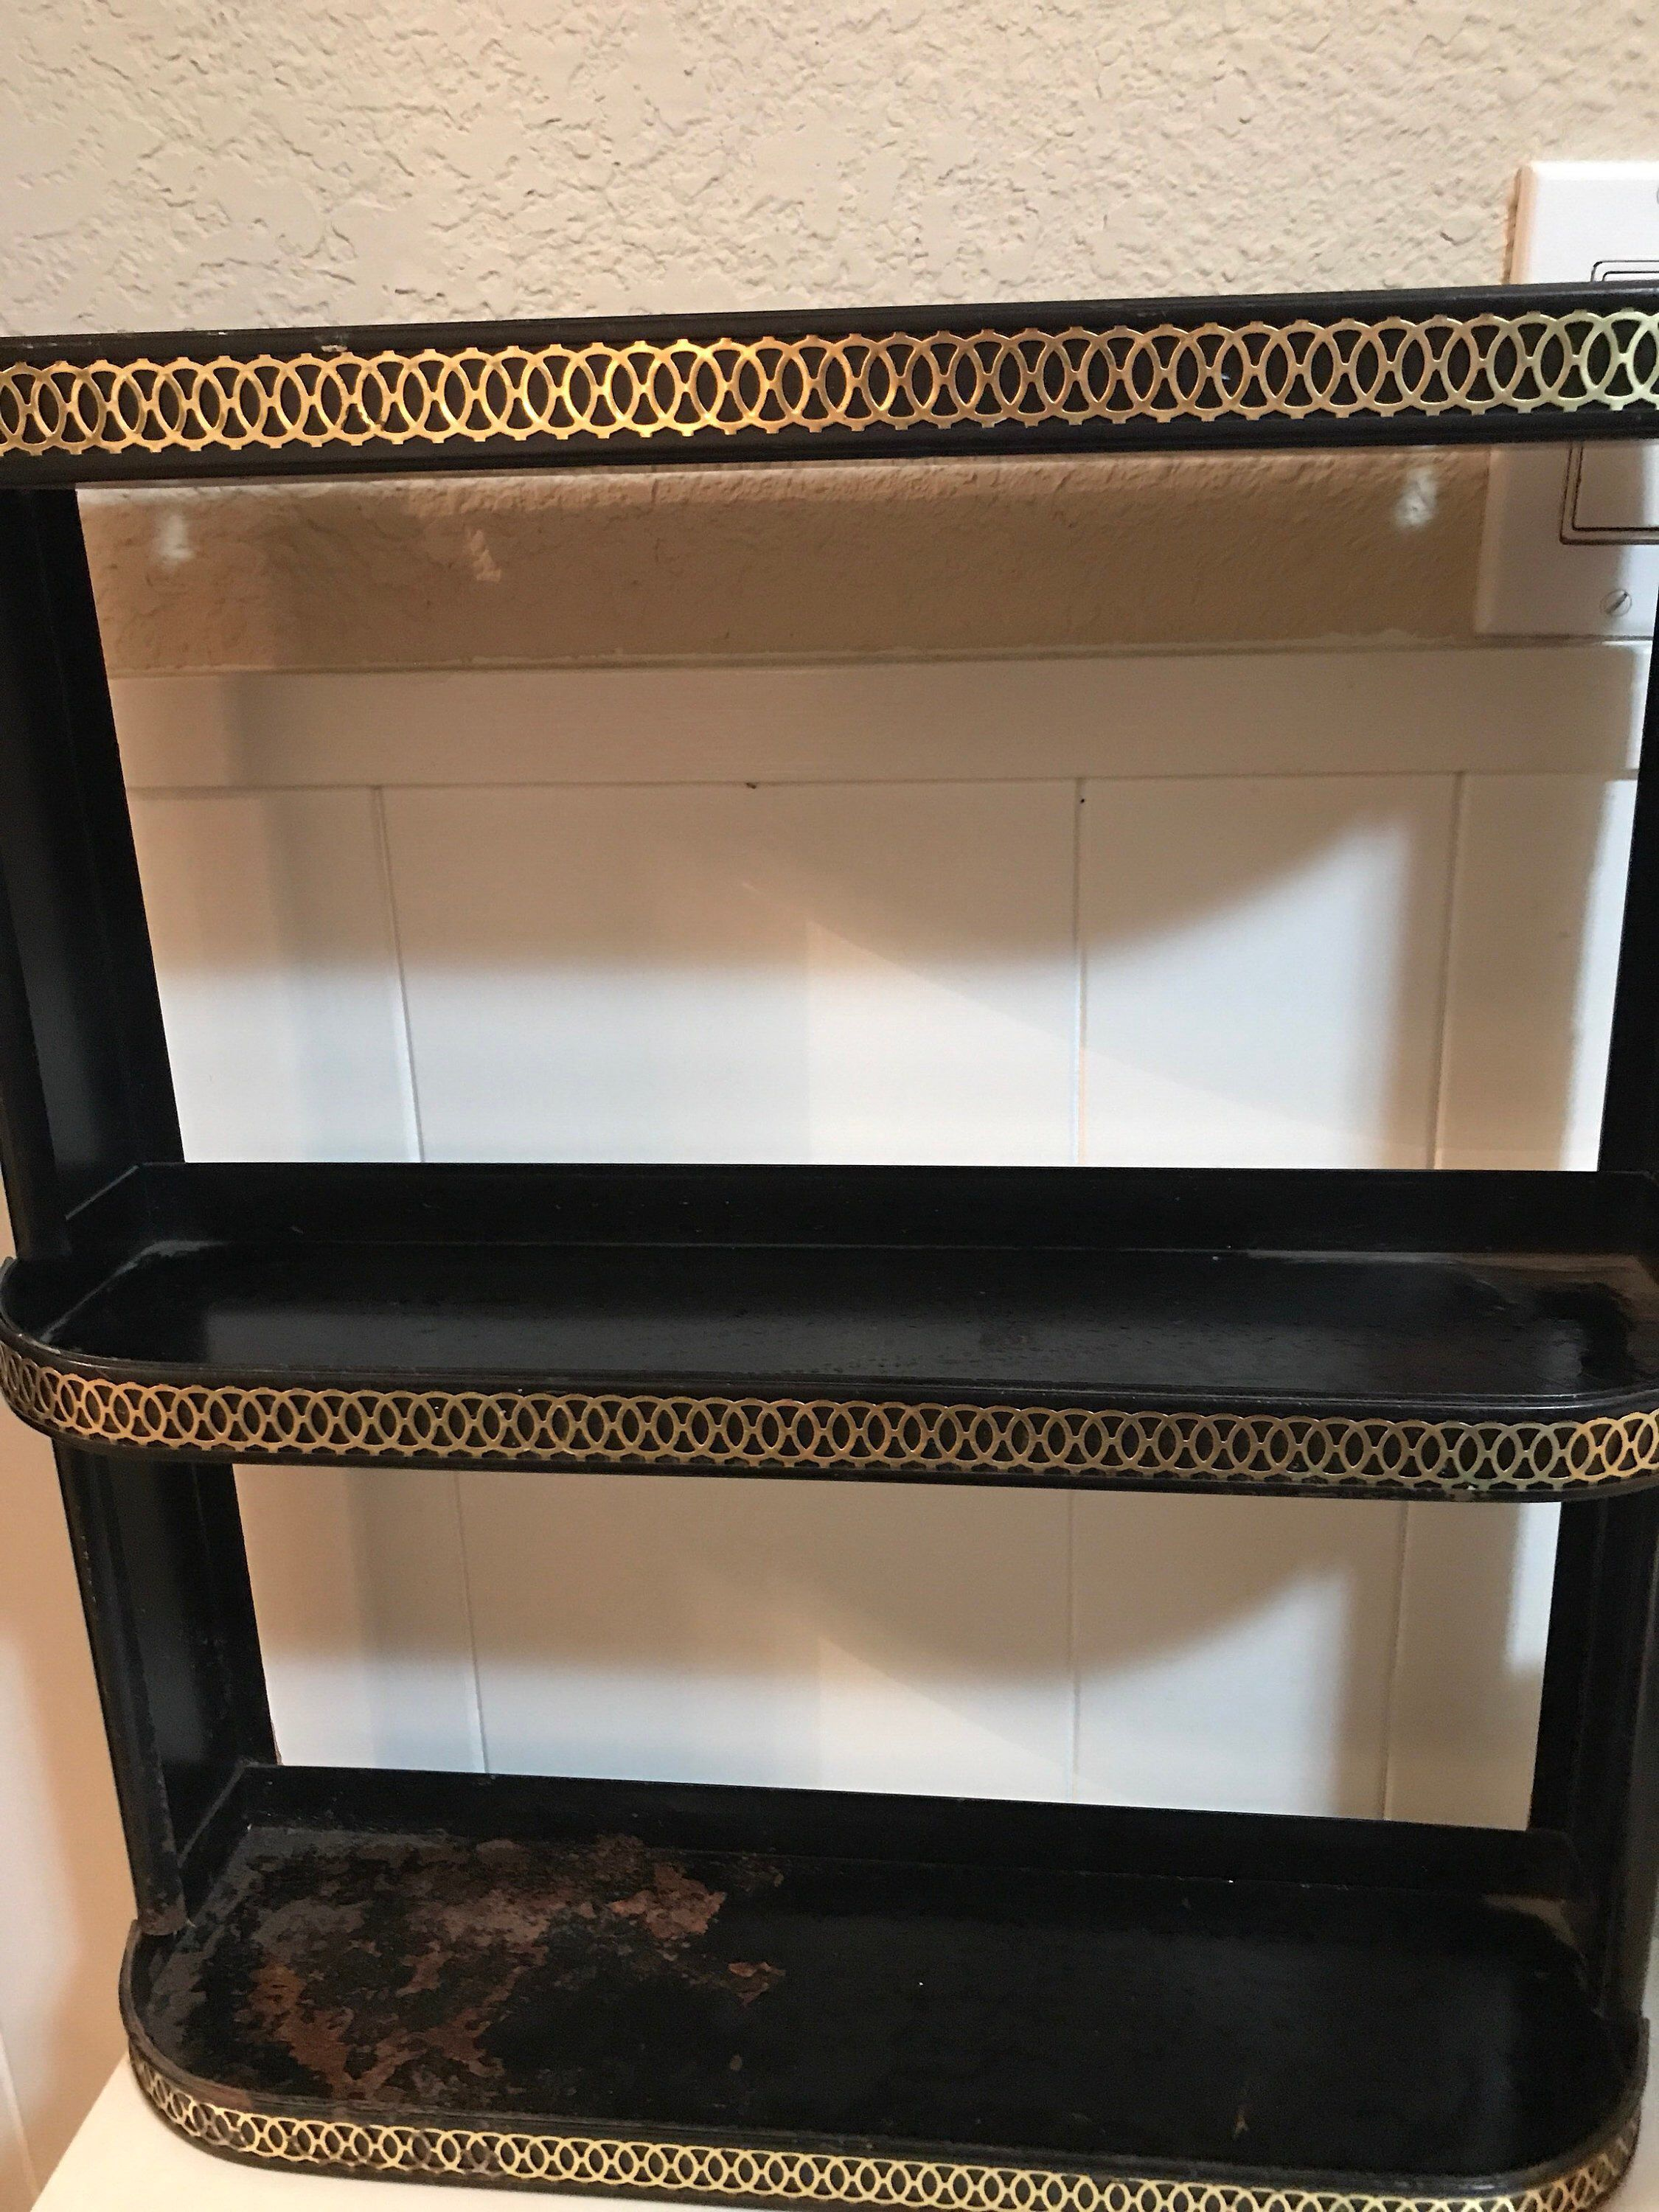 Vintage Shelf Black With Gold Trim 50 S Bathroom Metal With 3 Shelves Sale Price Was 60 00 Now 35 00 Vintage Shelf 50s Bathroom Vintage